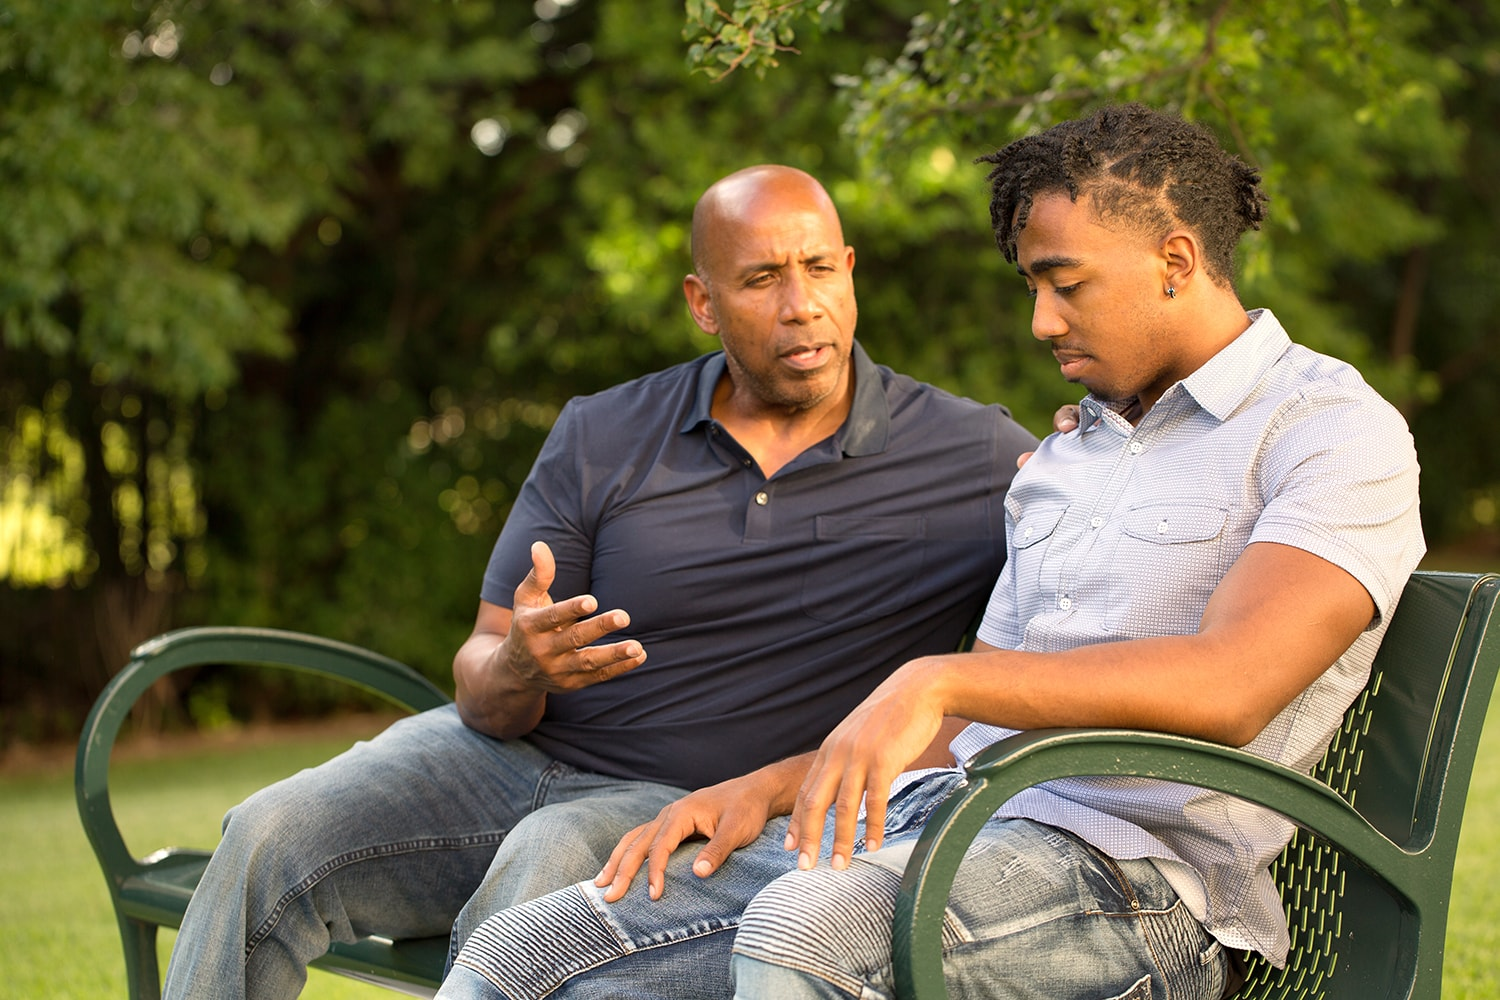 mentor speaking to a young man on a park bench